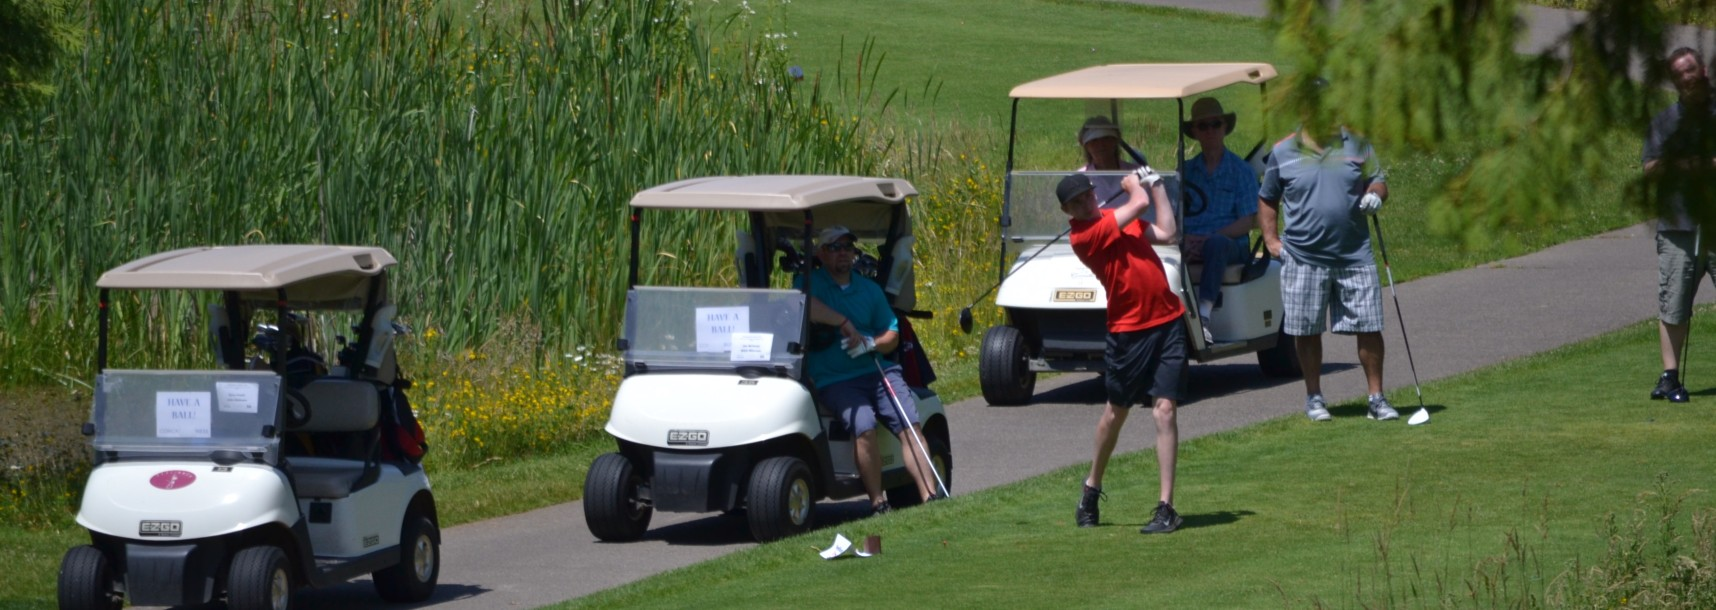 Golf_Tournament-w1716.jpg